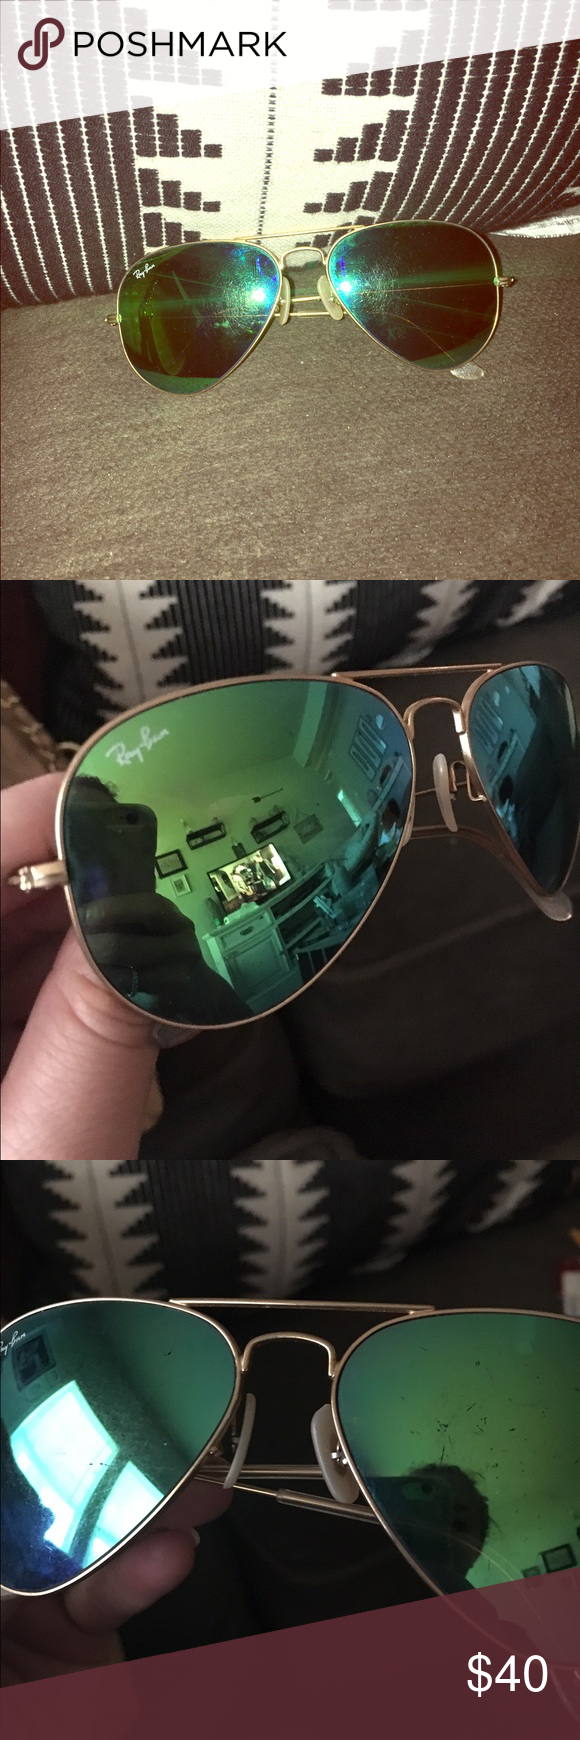 Ray Ban Aviators Authentic. Comes with original RayBan case. Does have minor scratching on the lenses. No flaws other than that. Priced to sell! Ray-Ban Accessories Sunglasses